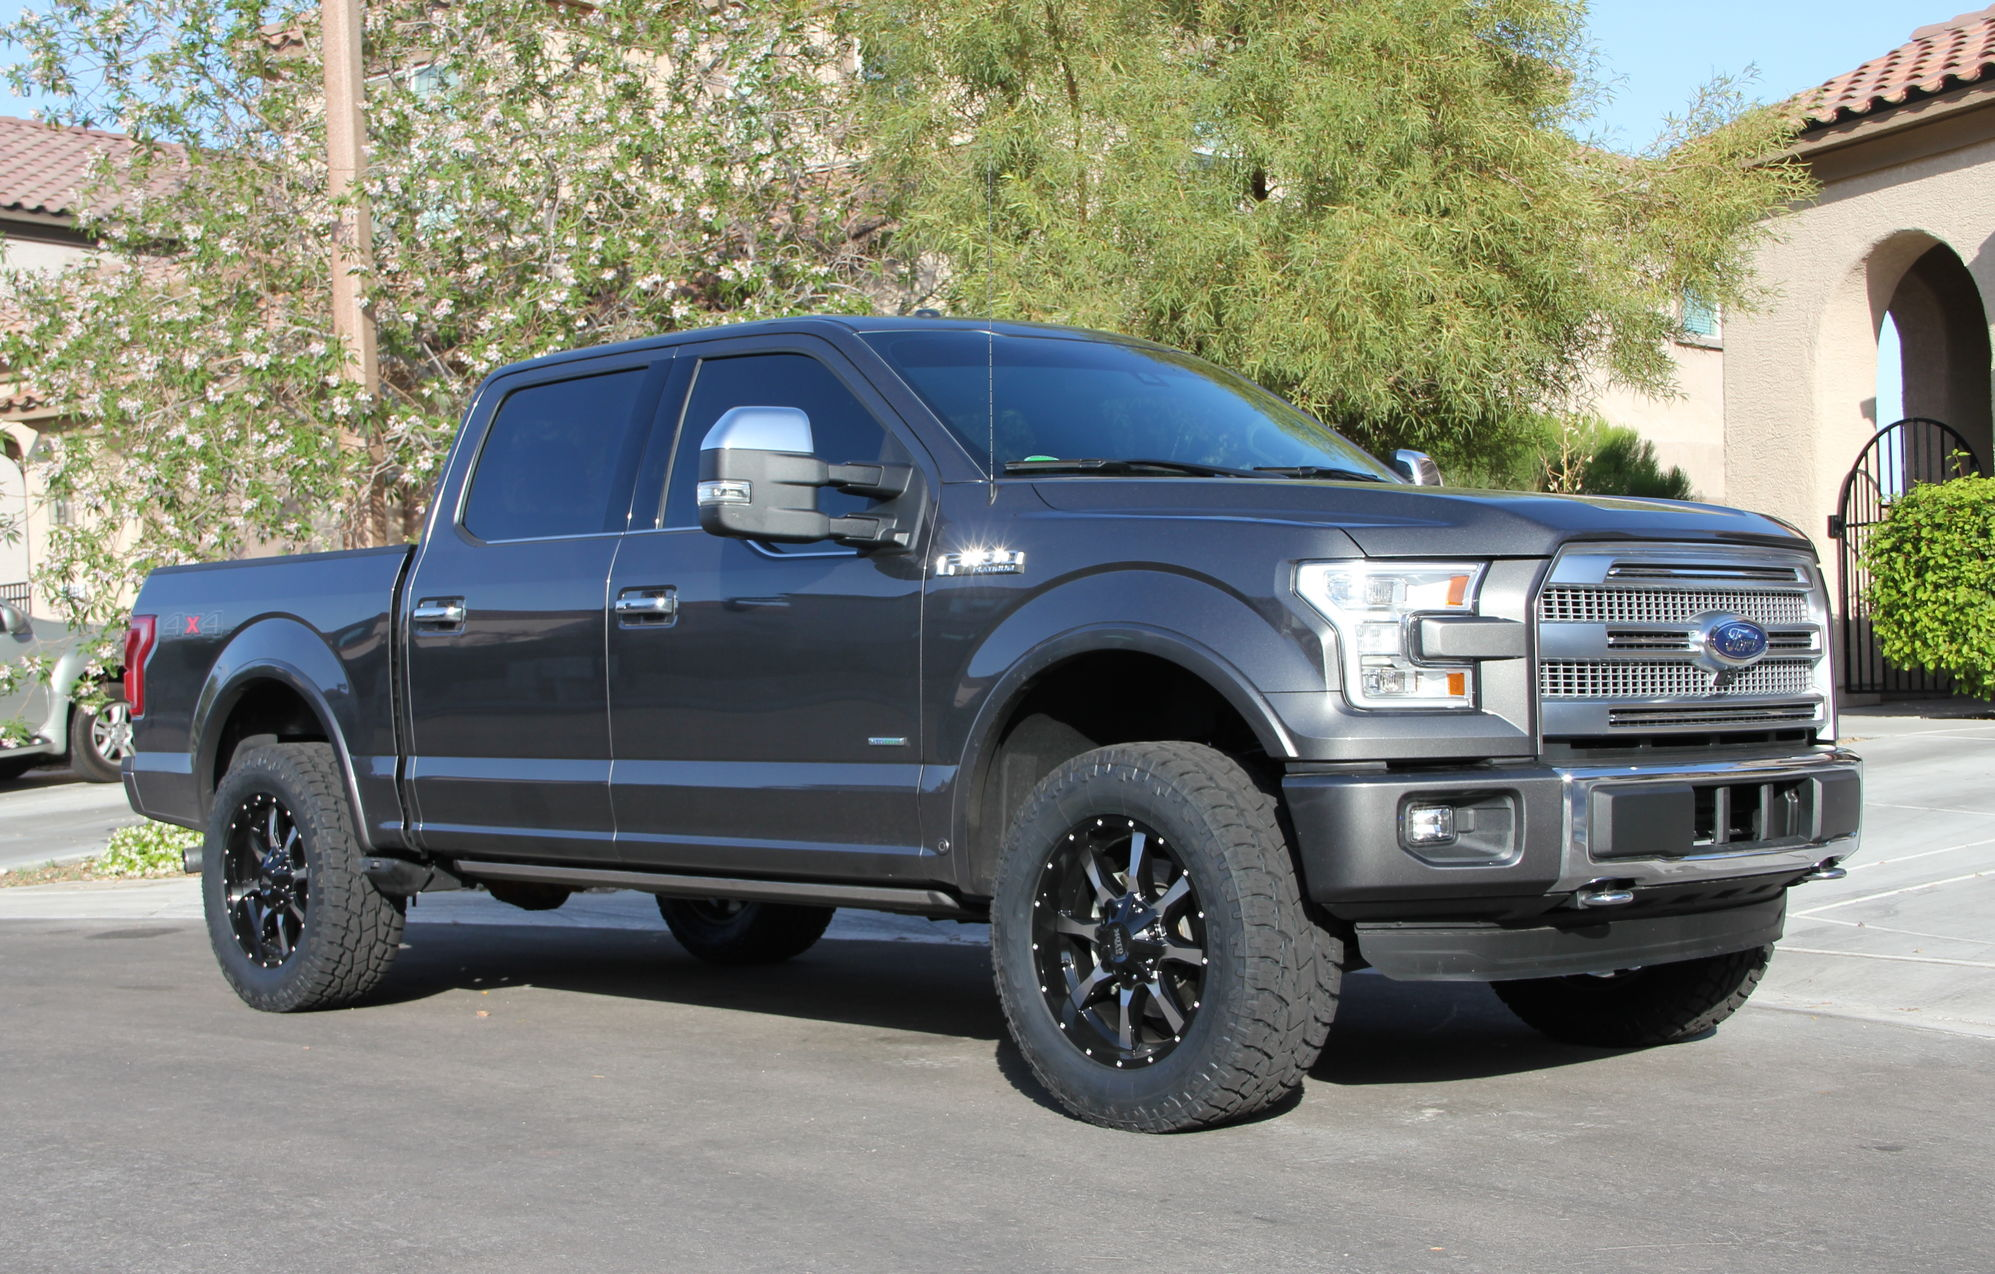 295/65R20 Toyo AT-II's..? - Page 3 - Ford F150 Forum ...